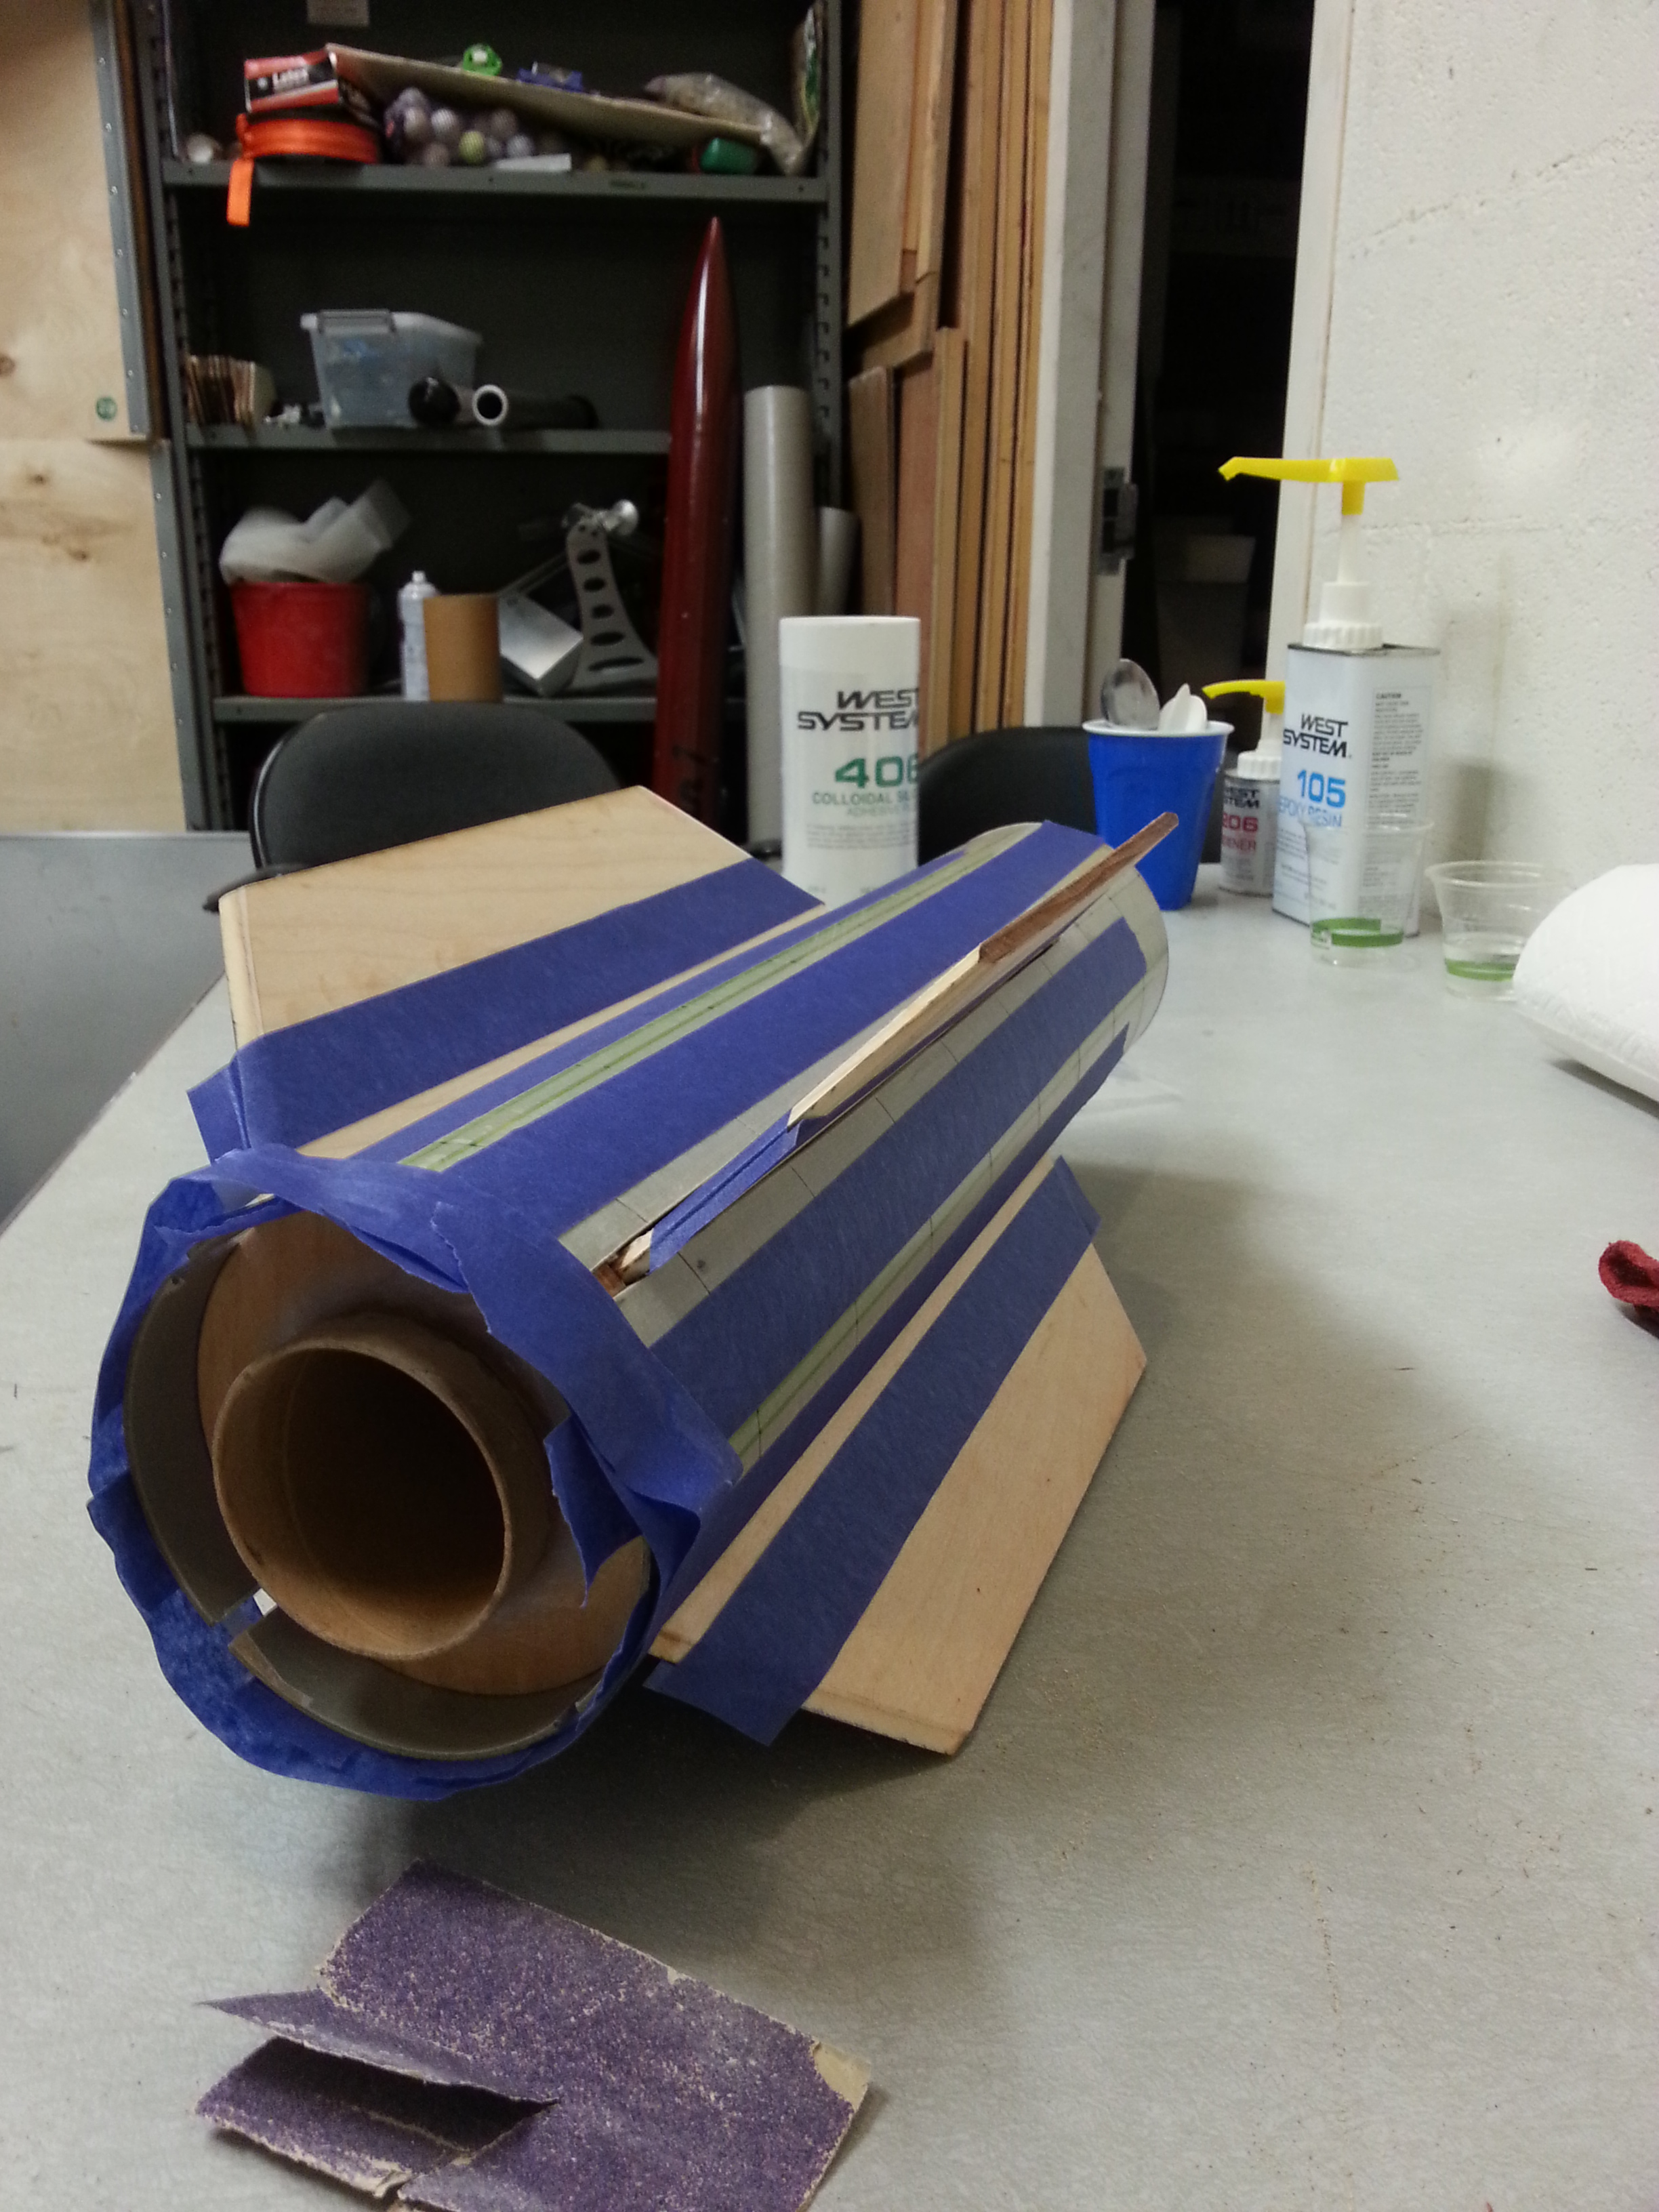 The fin sub-assembly is slid into the airframe and masked off, ready for some more epoxy work.